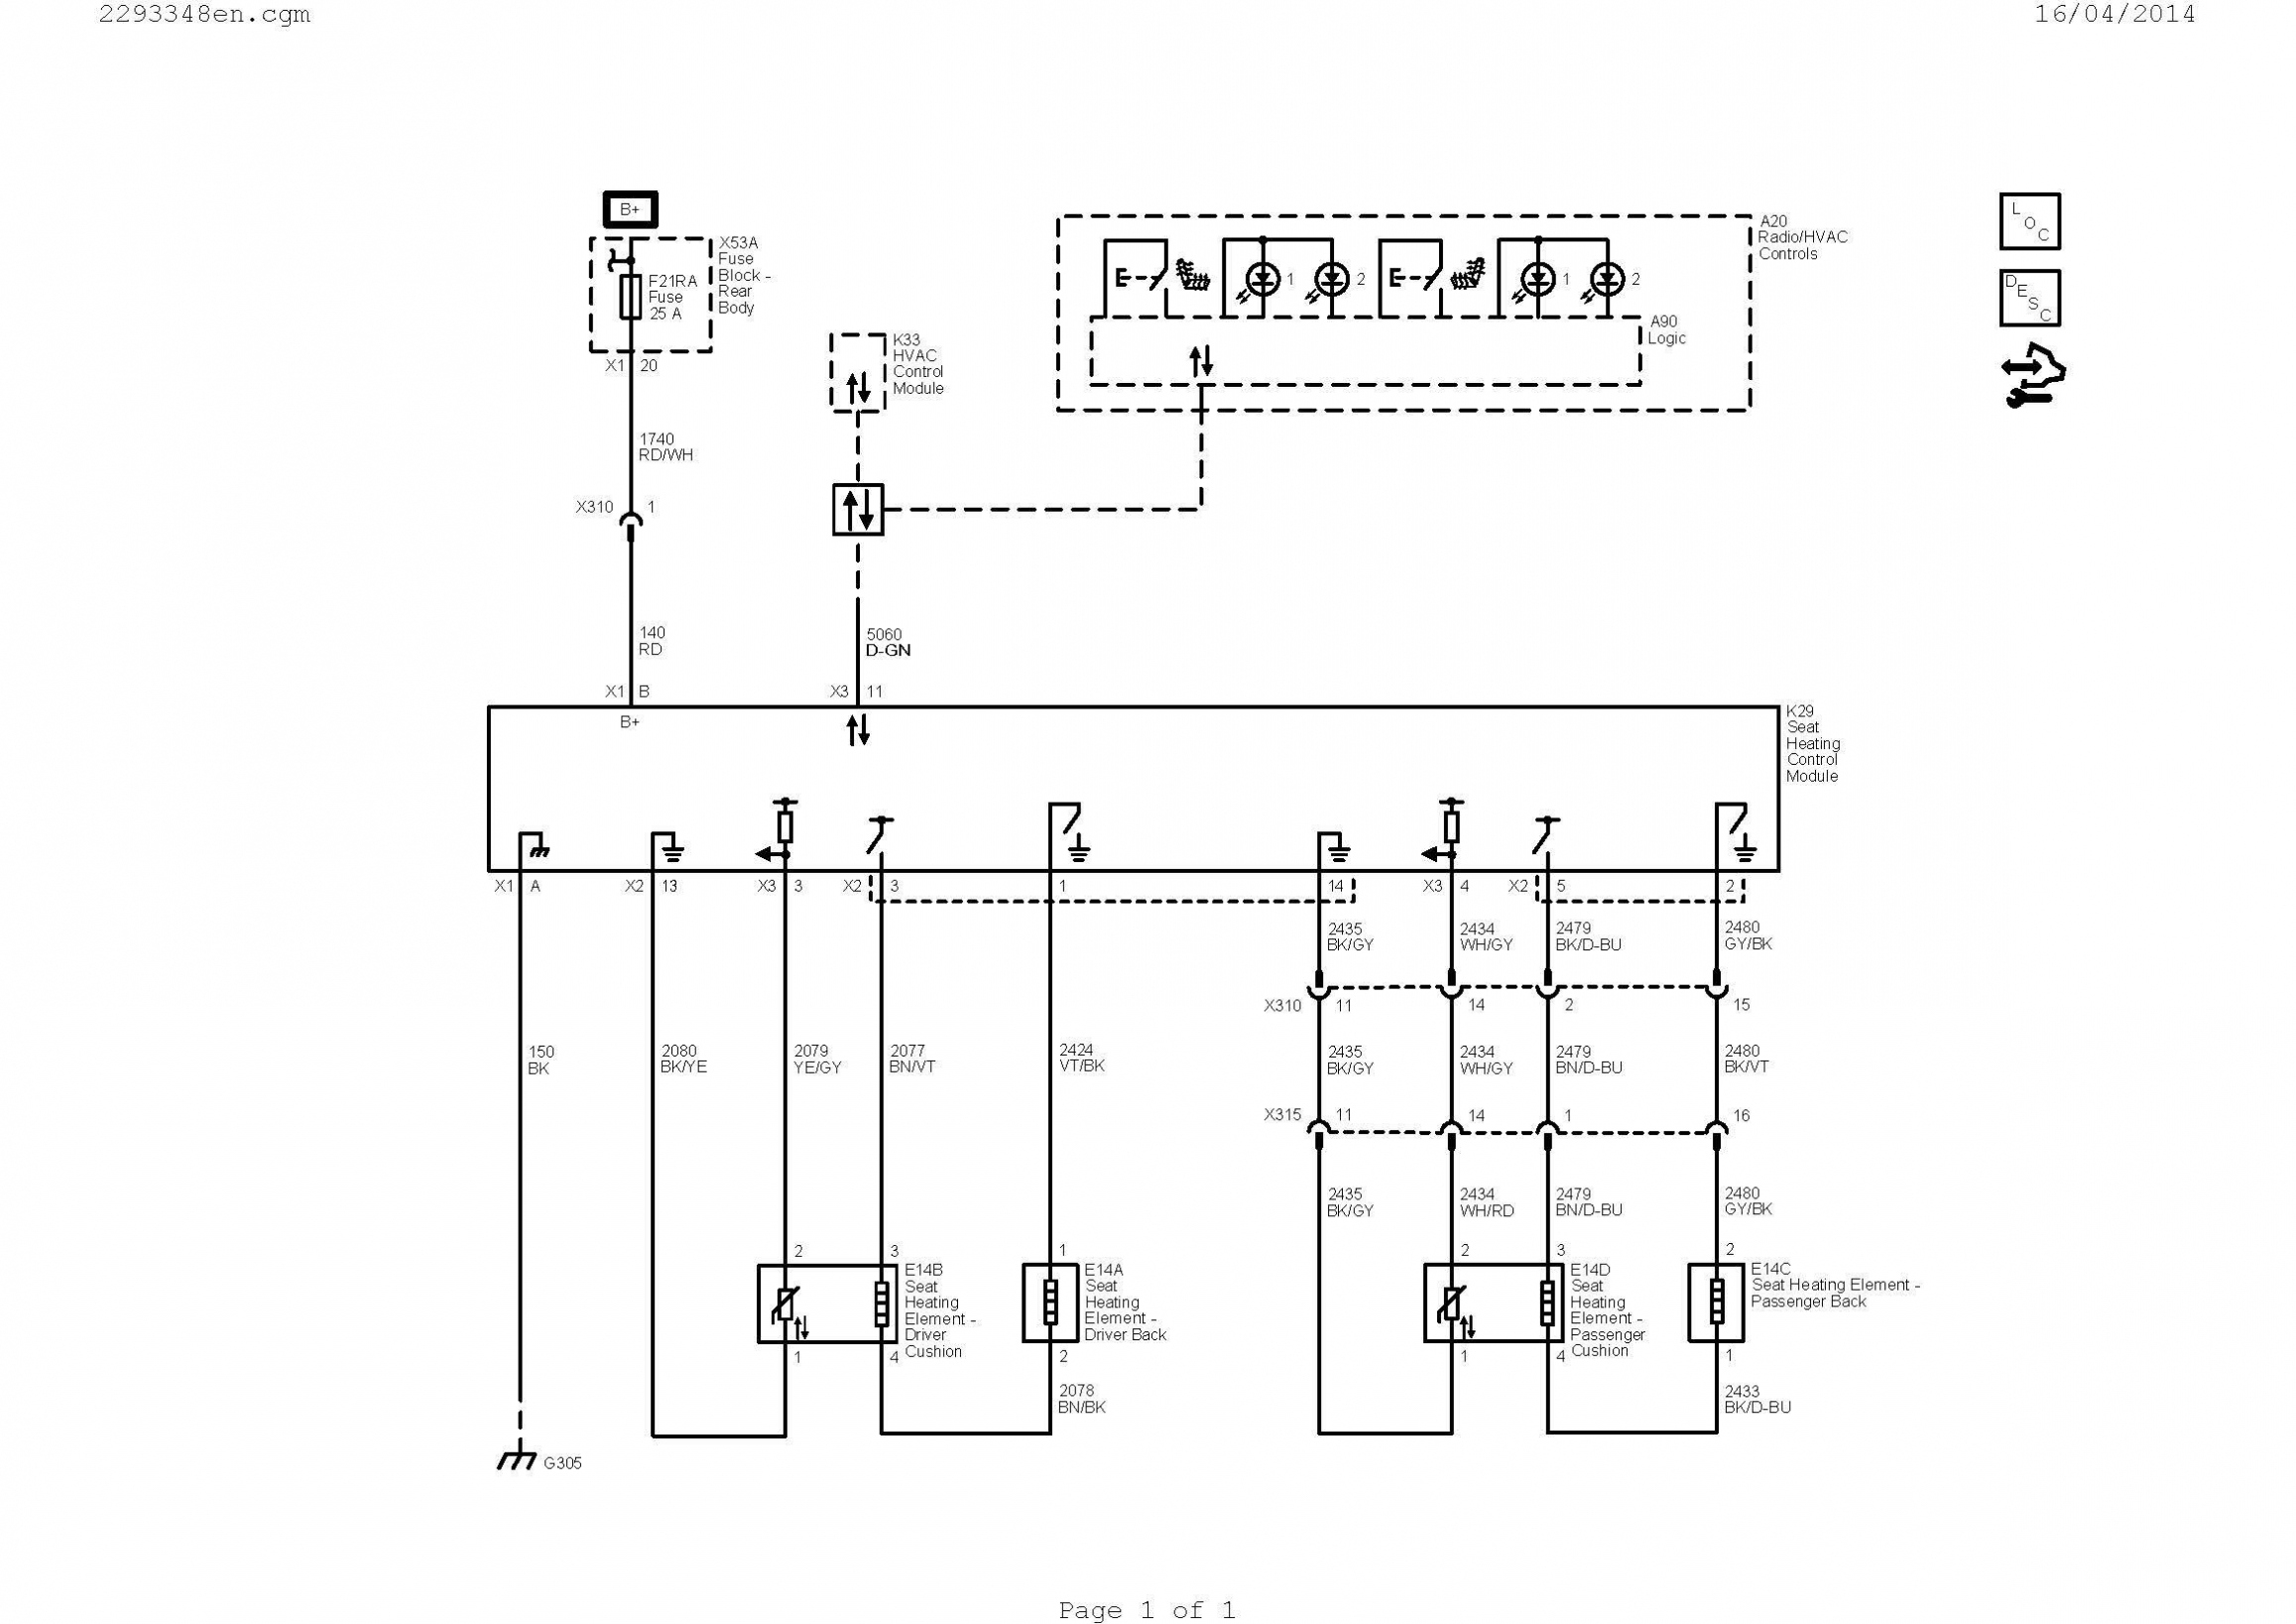 Wiring Diagram For Car Trailer New Wiring Diagram For Trailer Hitch - Trailer Hitch Wiring Diagram